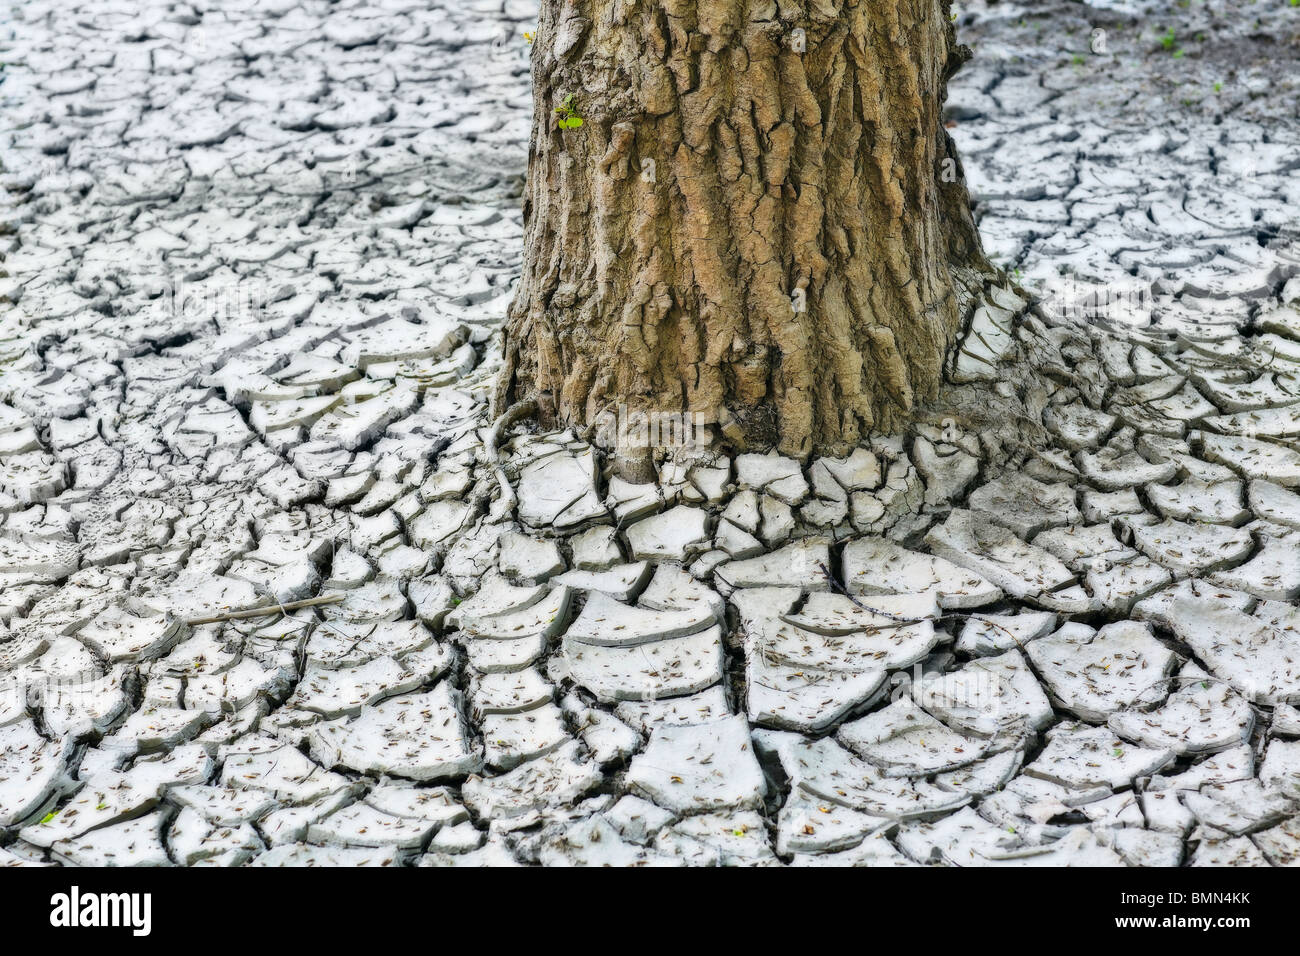 Dry cracked clay earth and a tree trunk.  Red River Valley, Winnipeg, Manitoba, Canada. - Stock Image